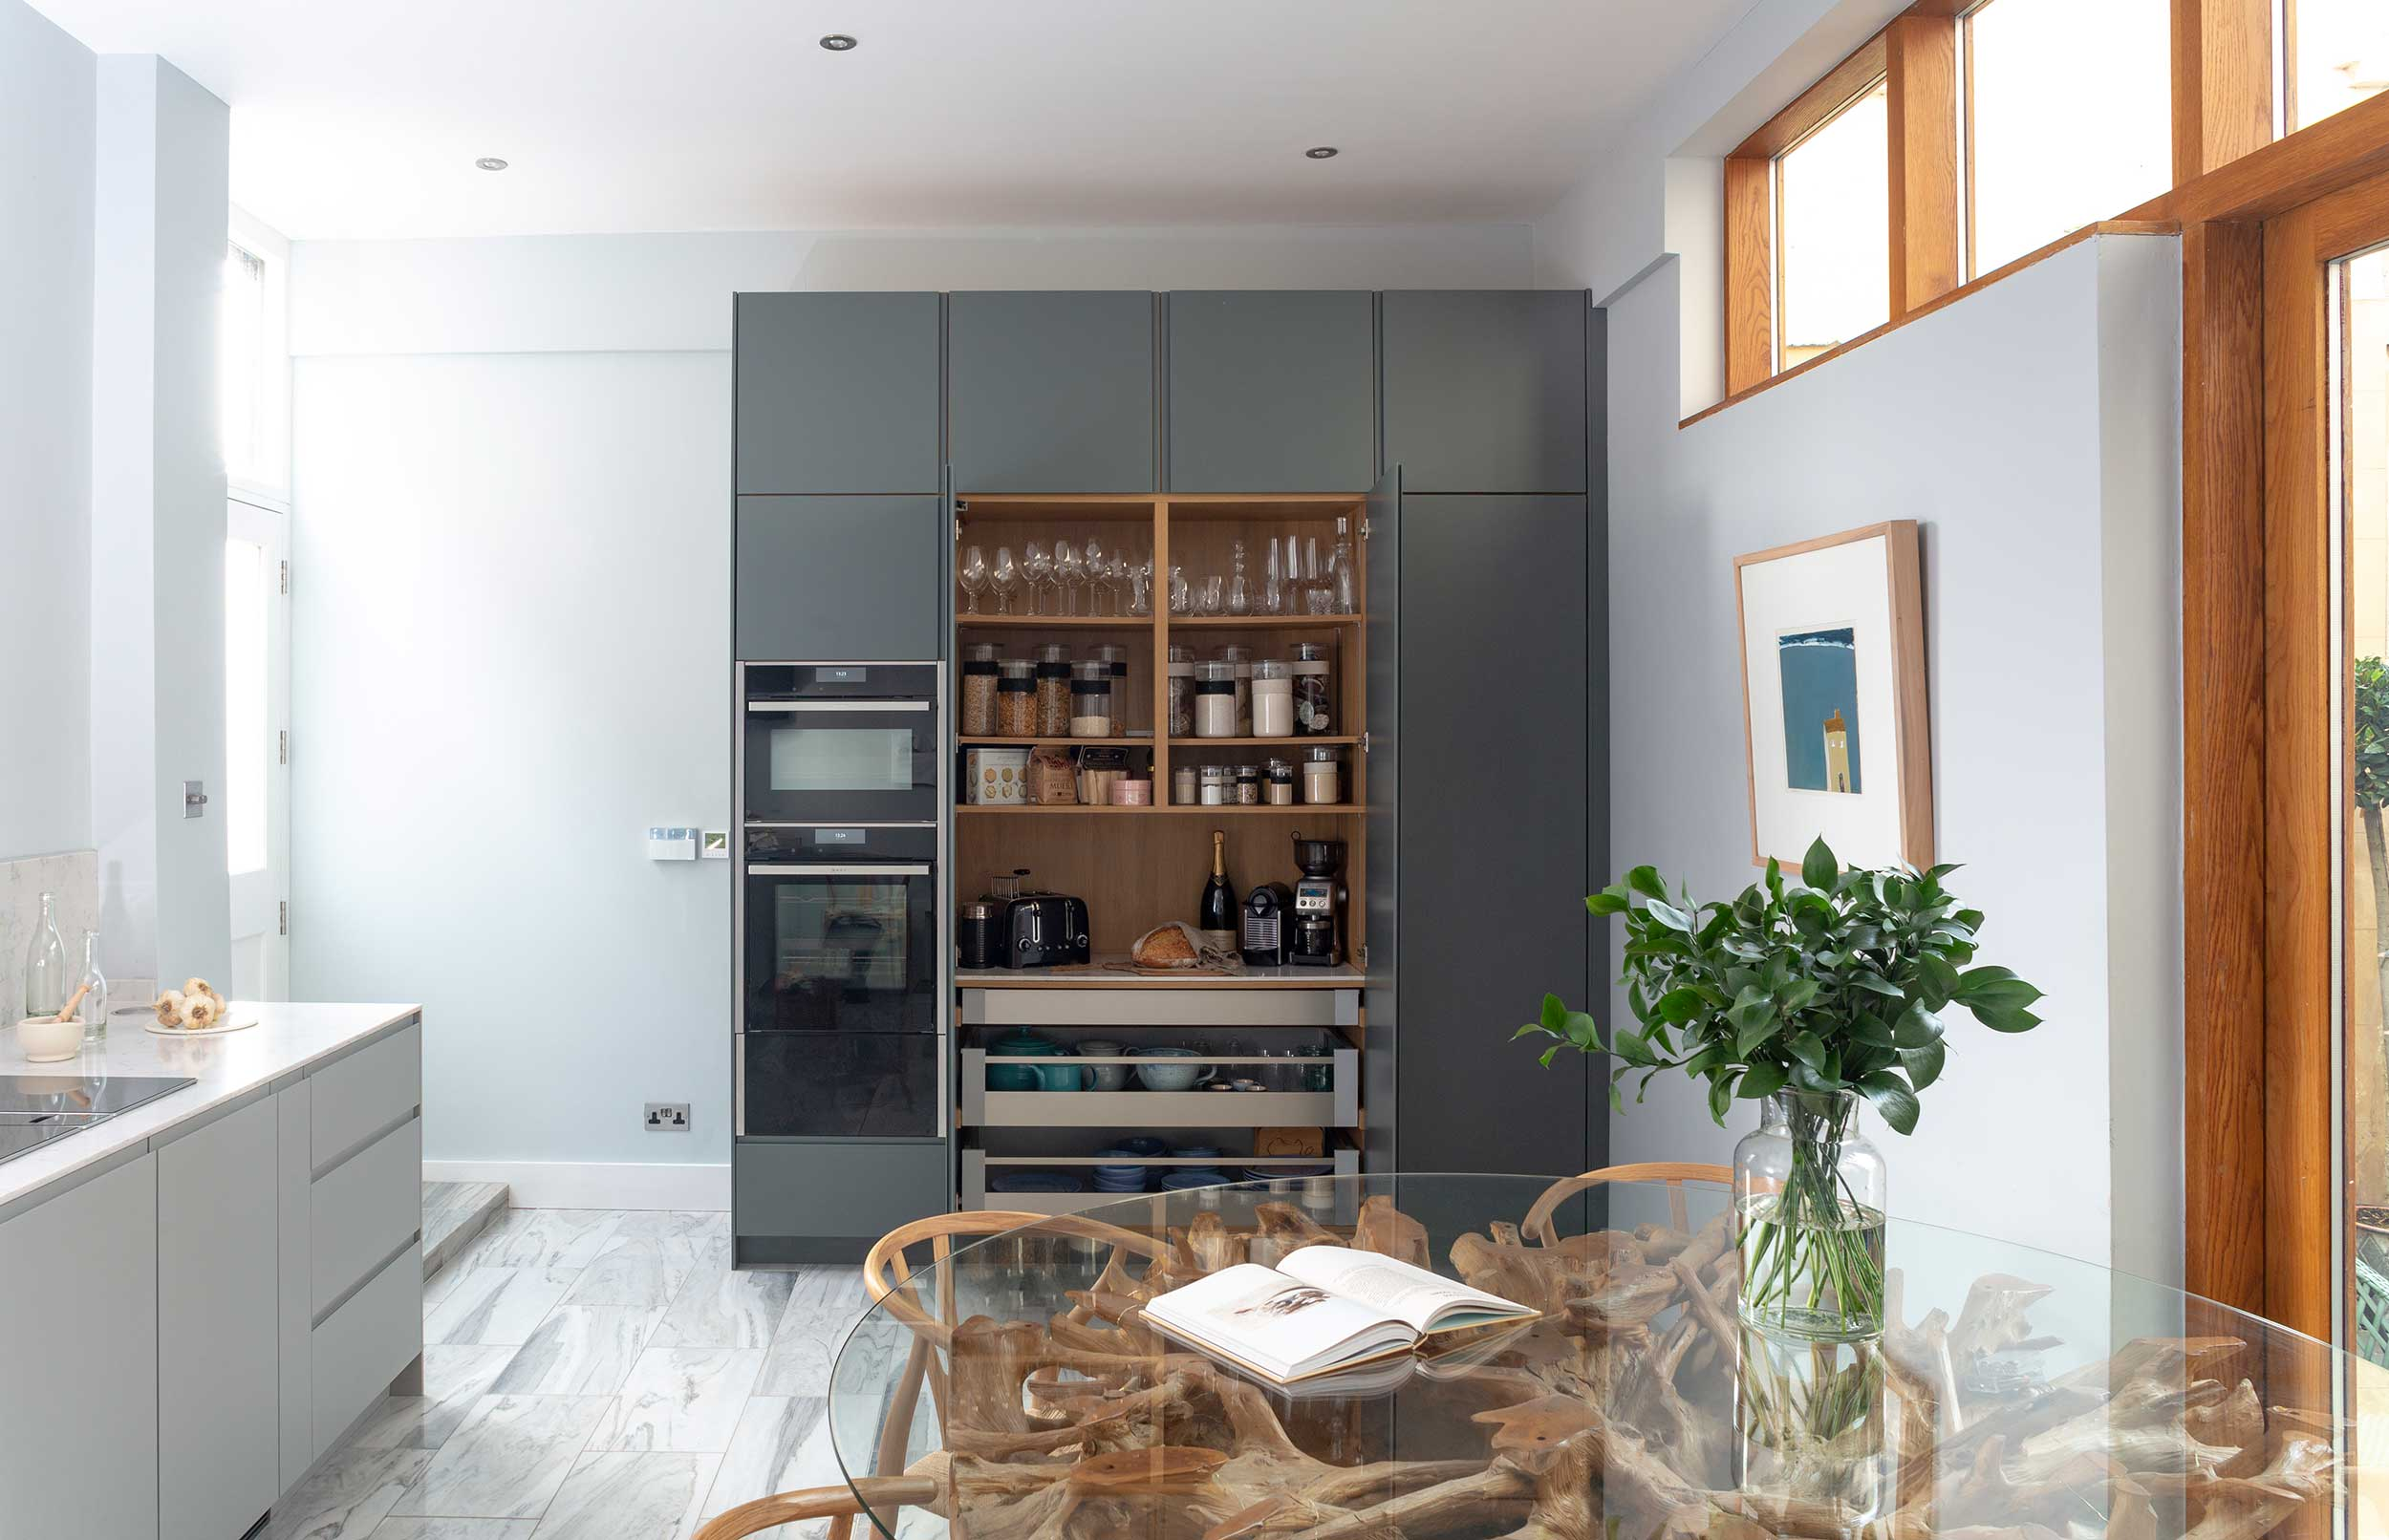 Understated Minimal kitchen cupboard open